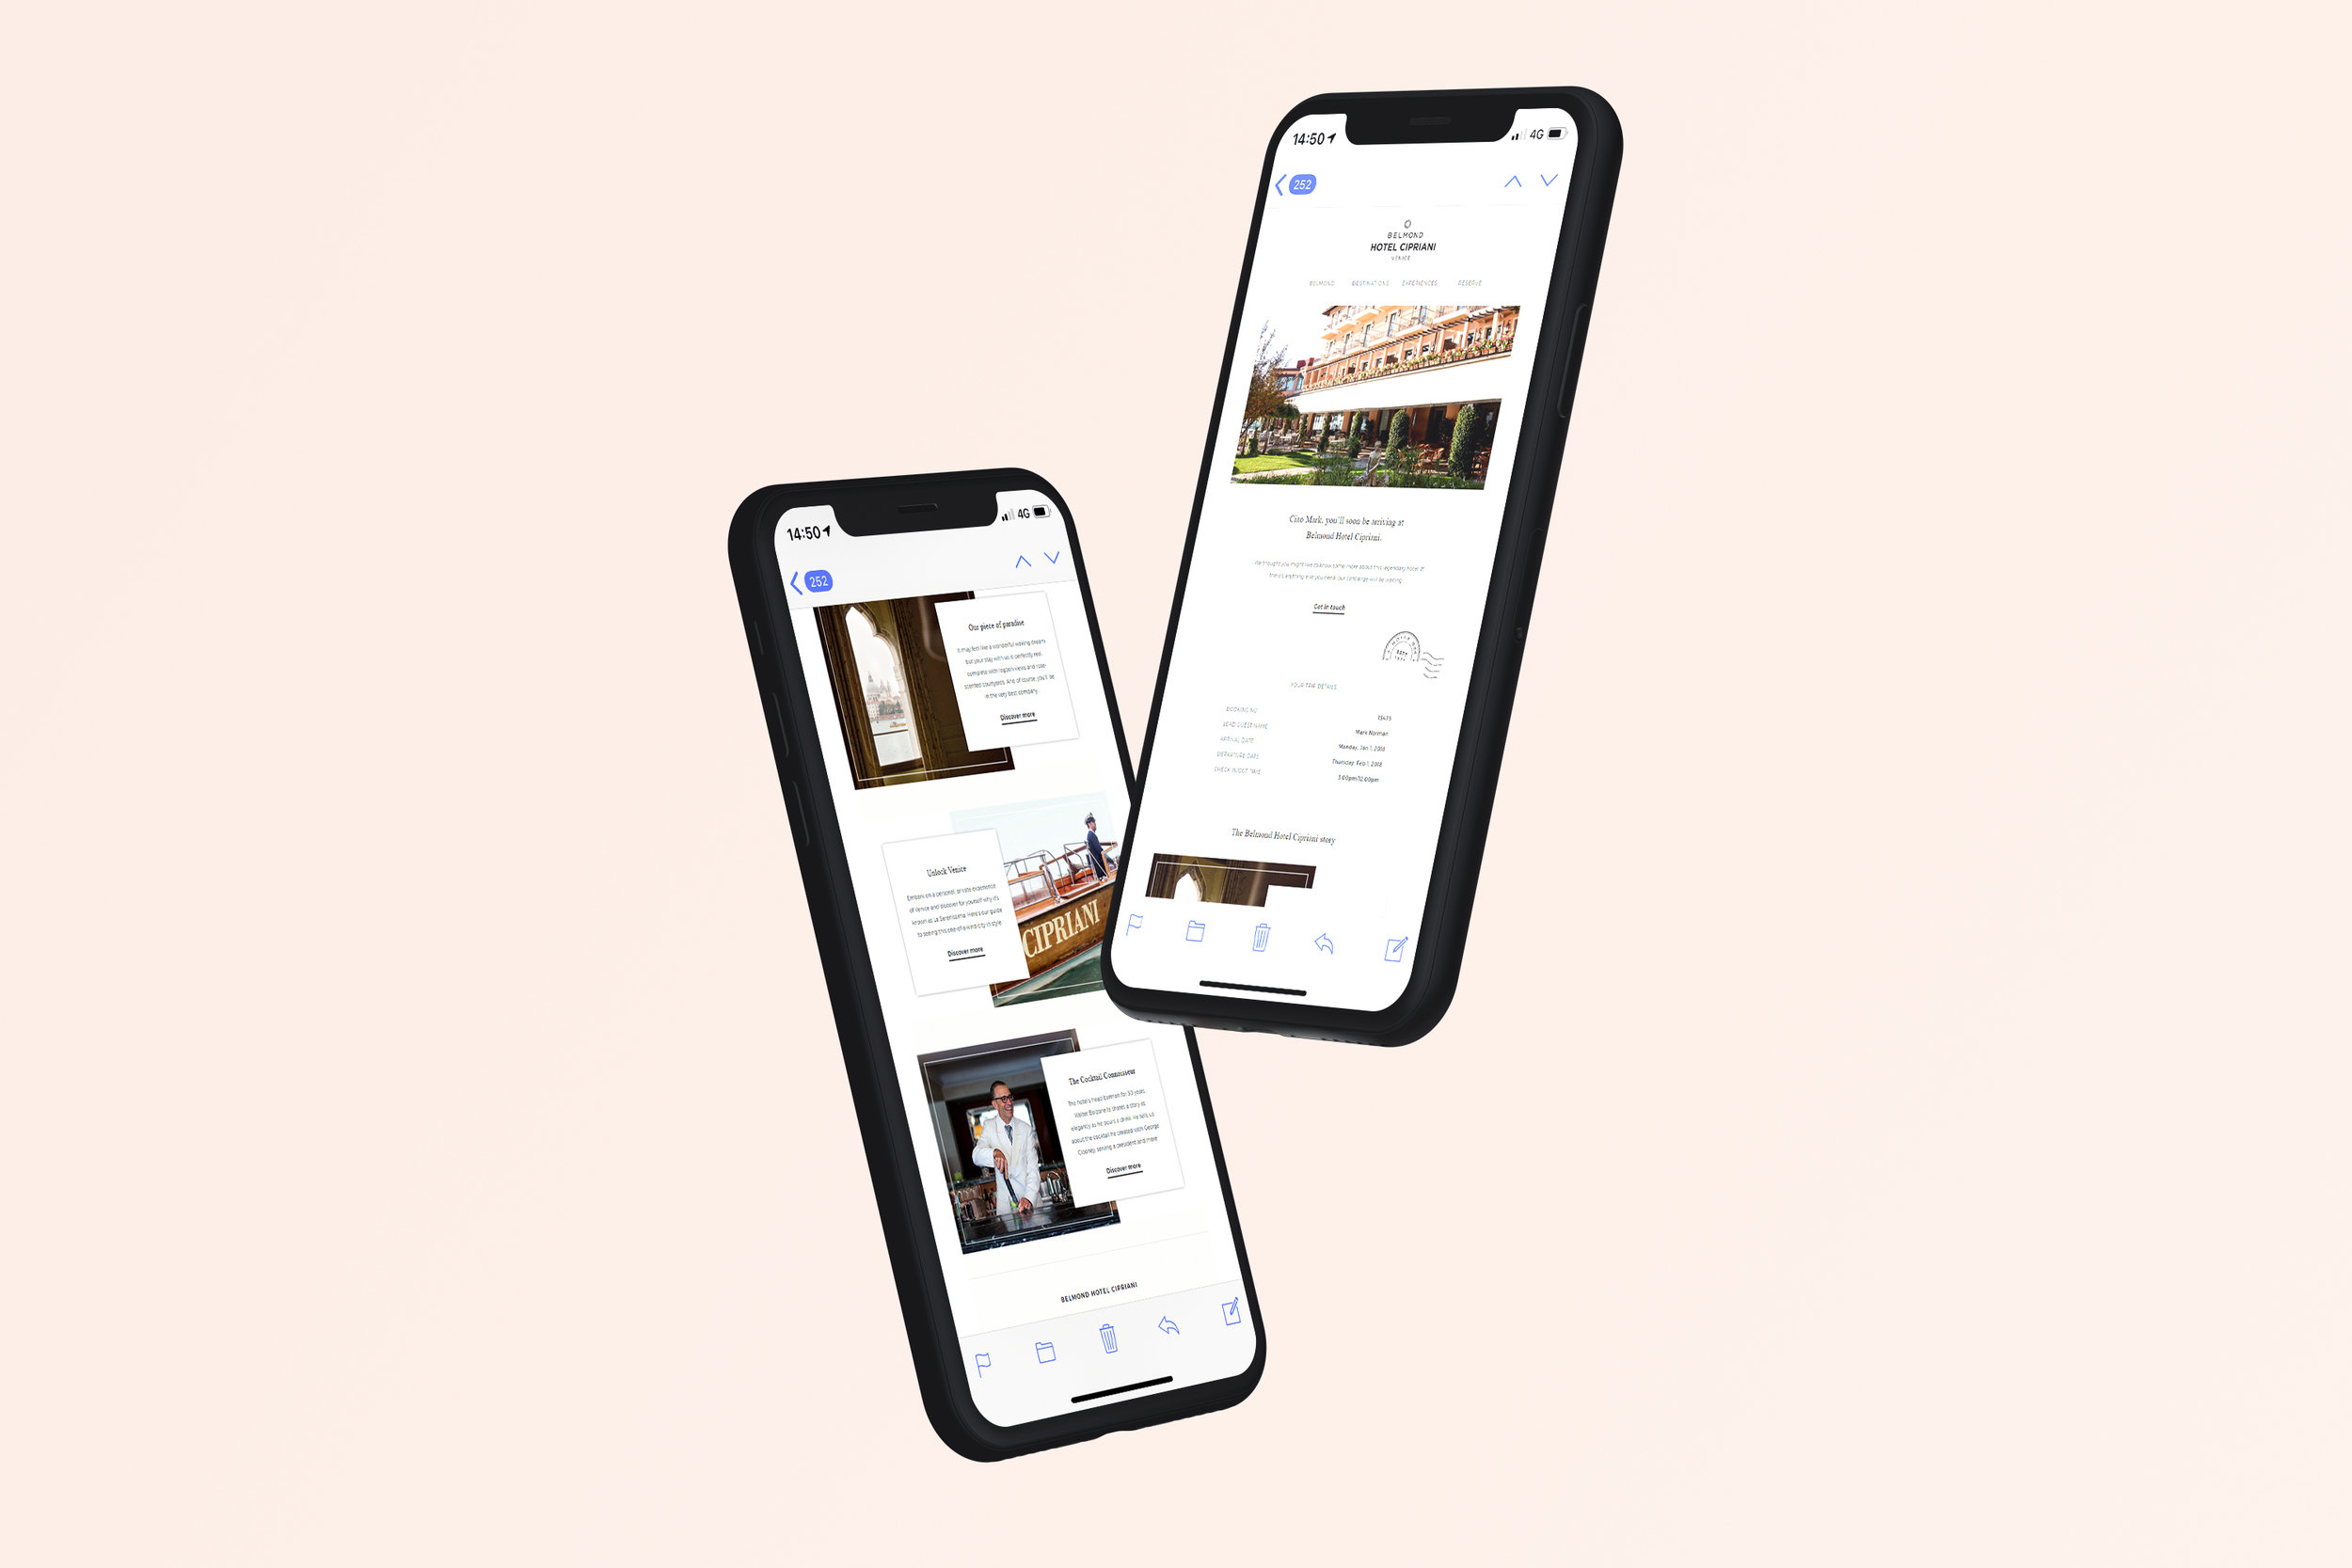 Belmond email iphone.jpg